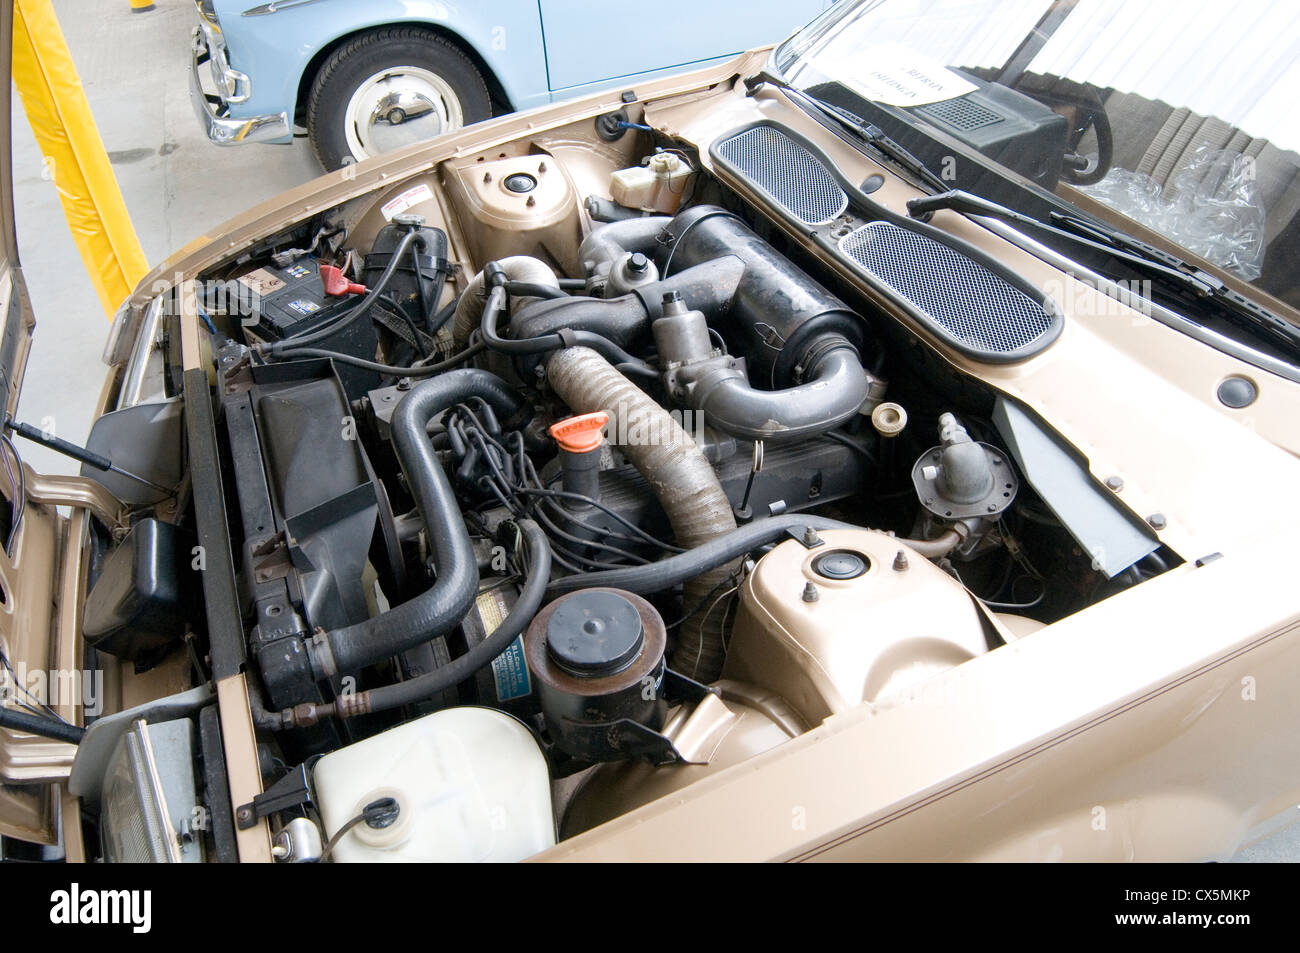 rover v8 3500 cc 215 ci sd1 twin carb engine engines bay bays bonnet - Stock Image